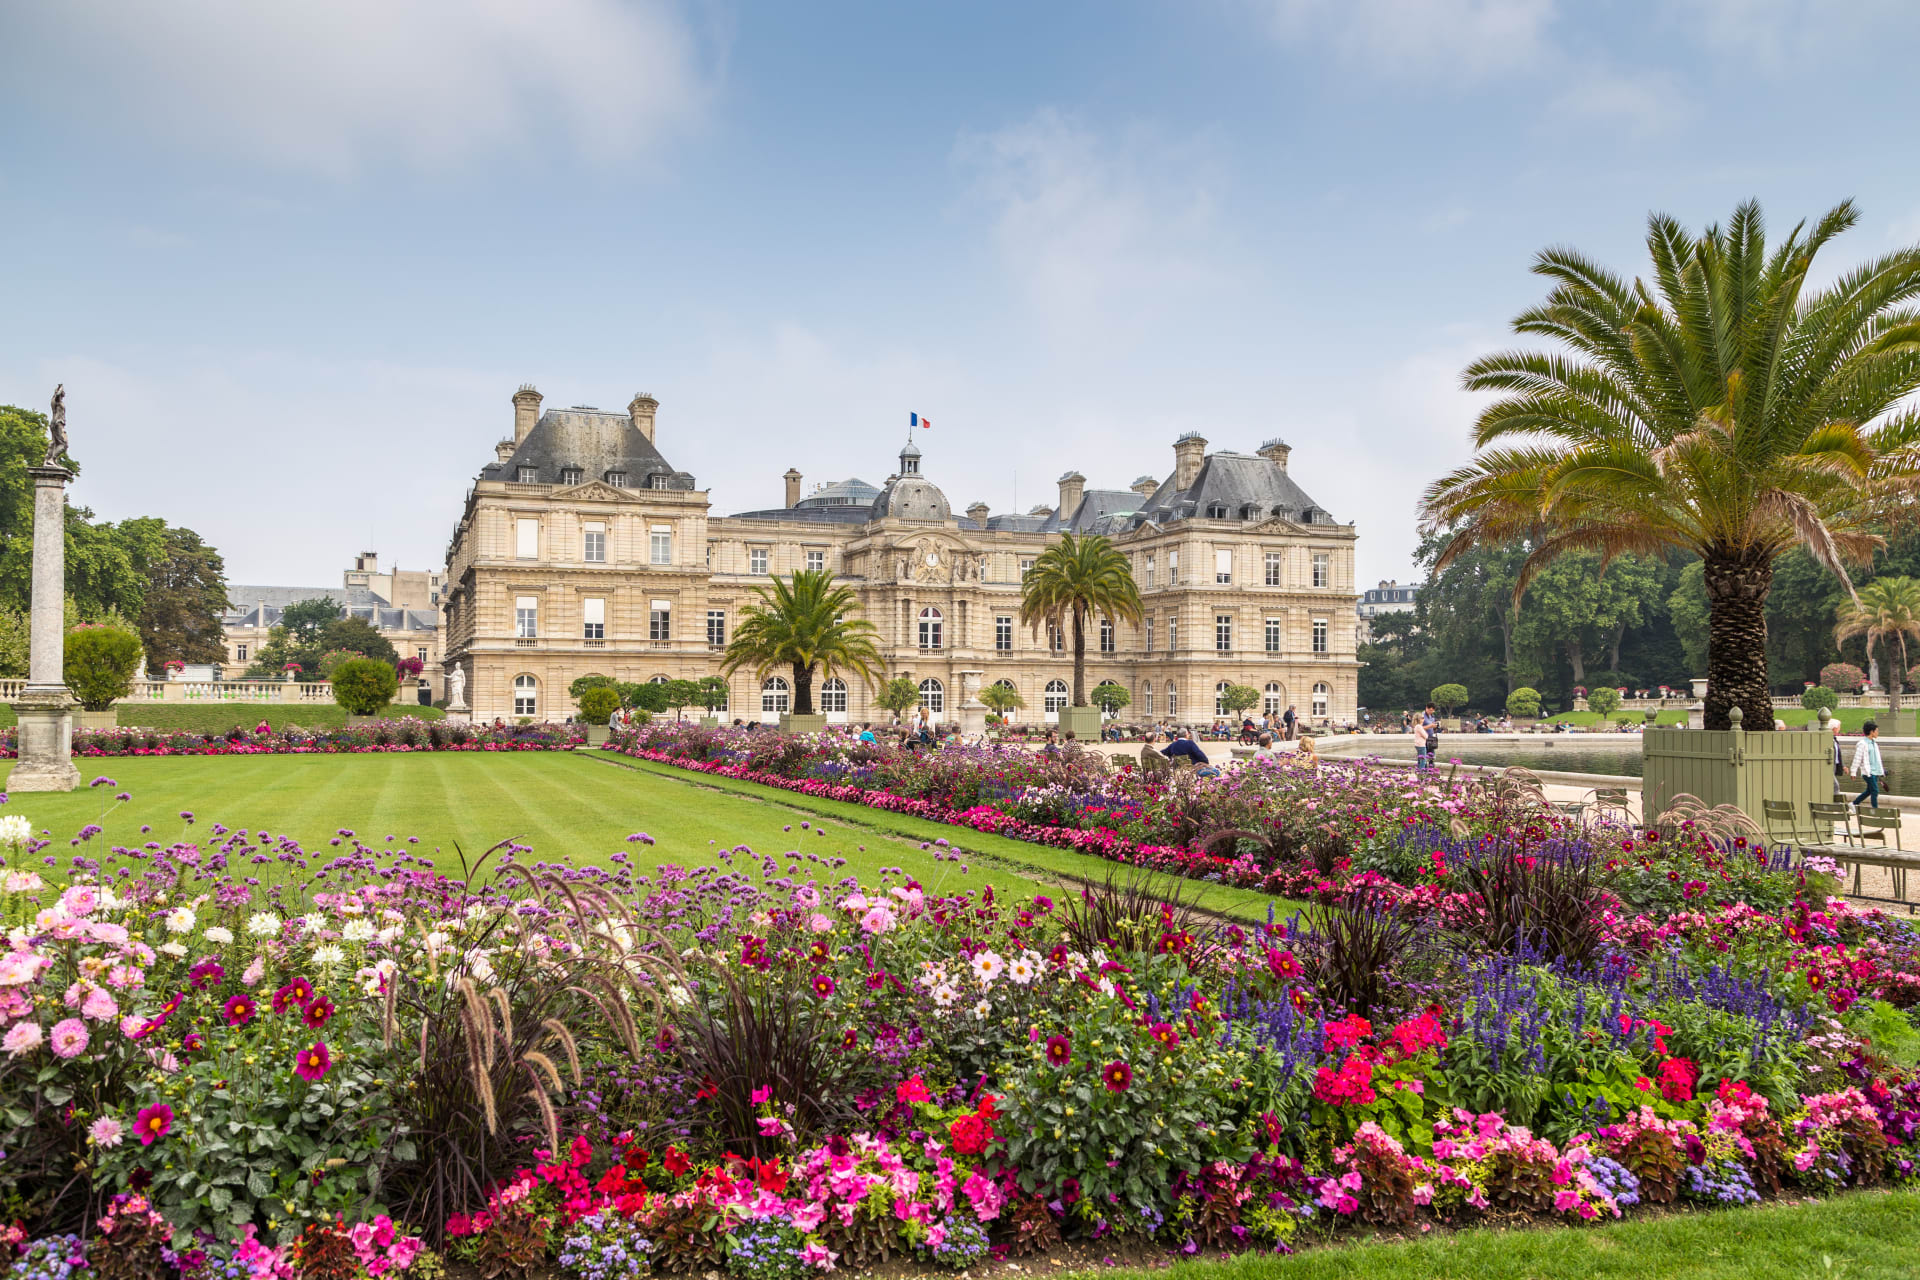 Paris - The Most Beautiful Gardens of Paris: the Luxembourg Gardens